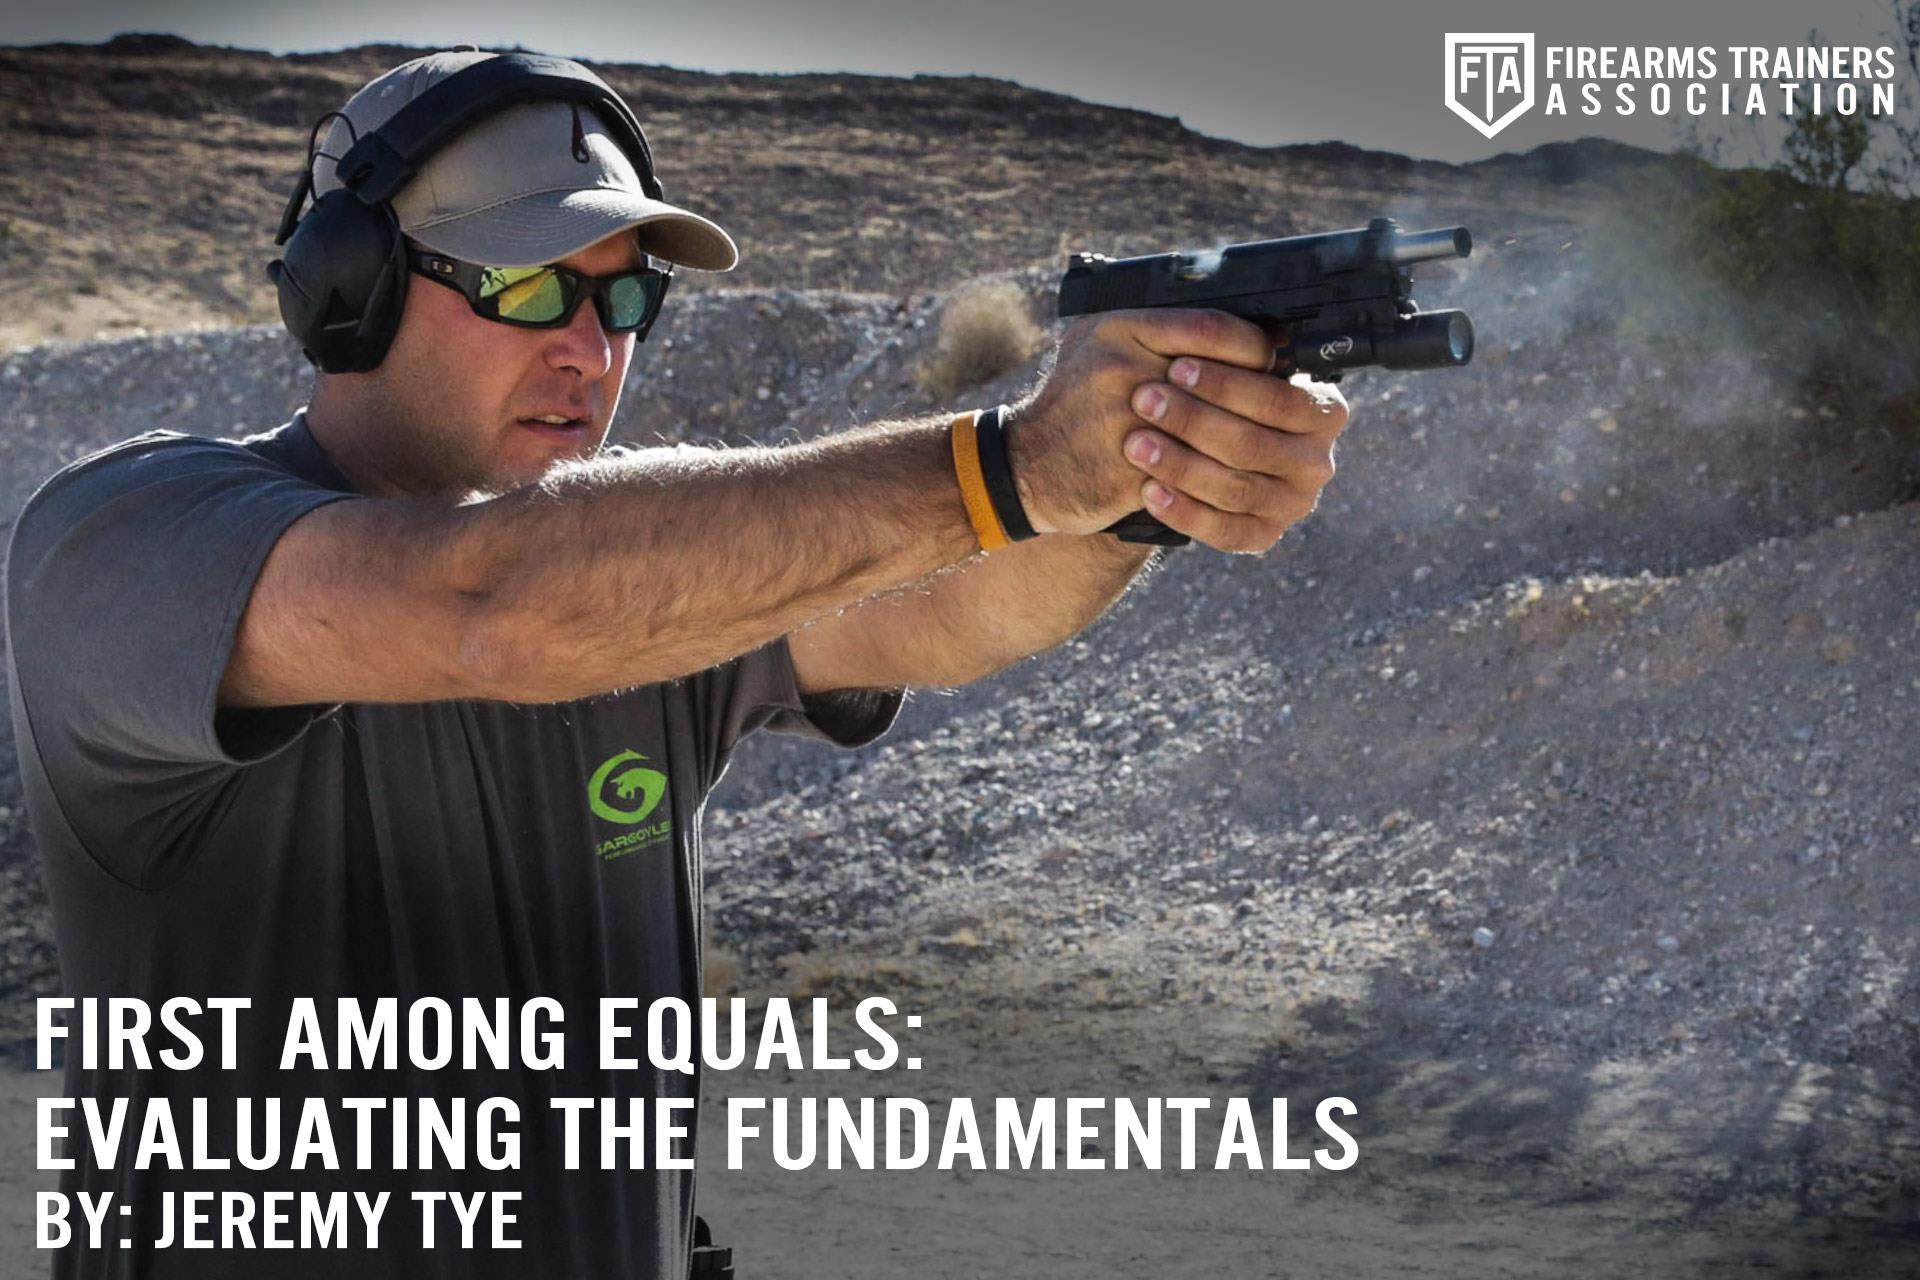 FIRST AMONG EQUALS: EVALUATING THE FUNDAMENTALS